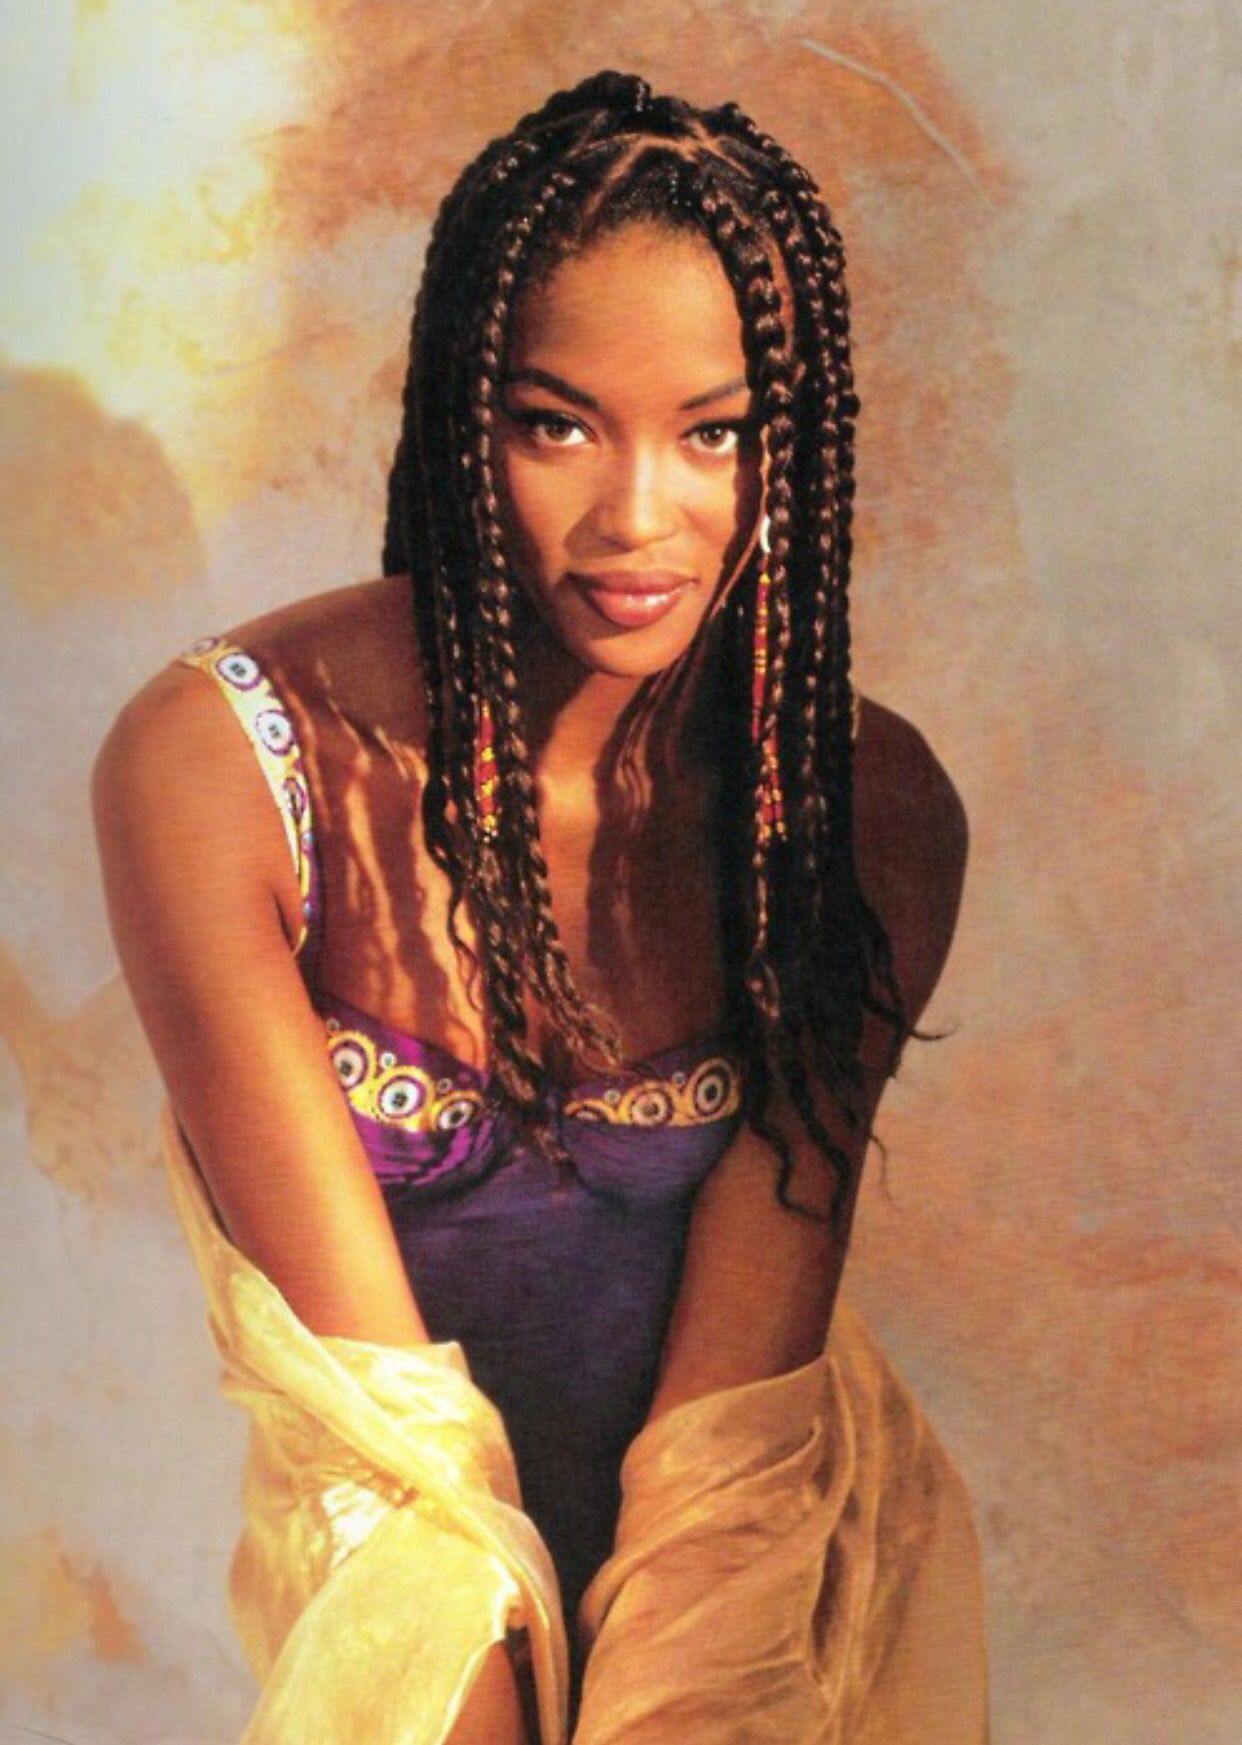 Pin By T On The 90s Aesthetic Braids For Black Hair Braids For Black Women Black Women Hairstyles